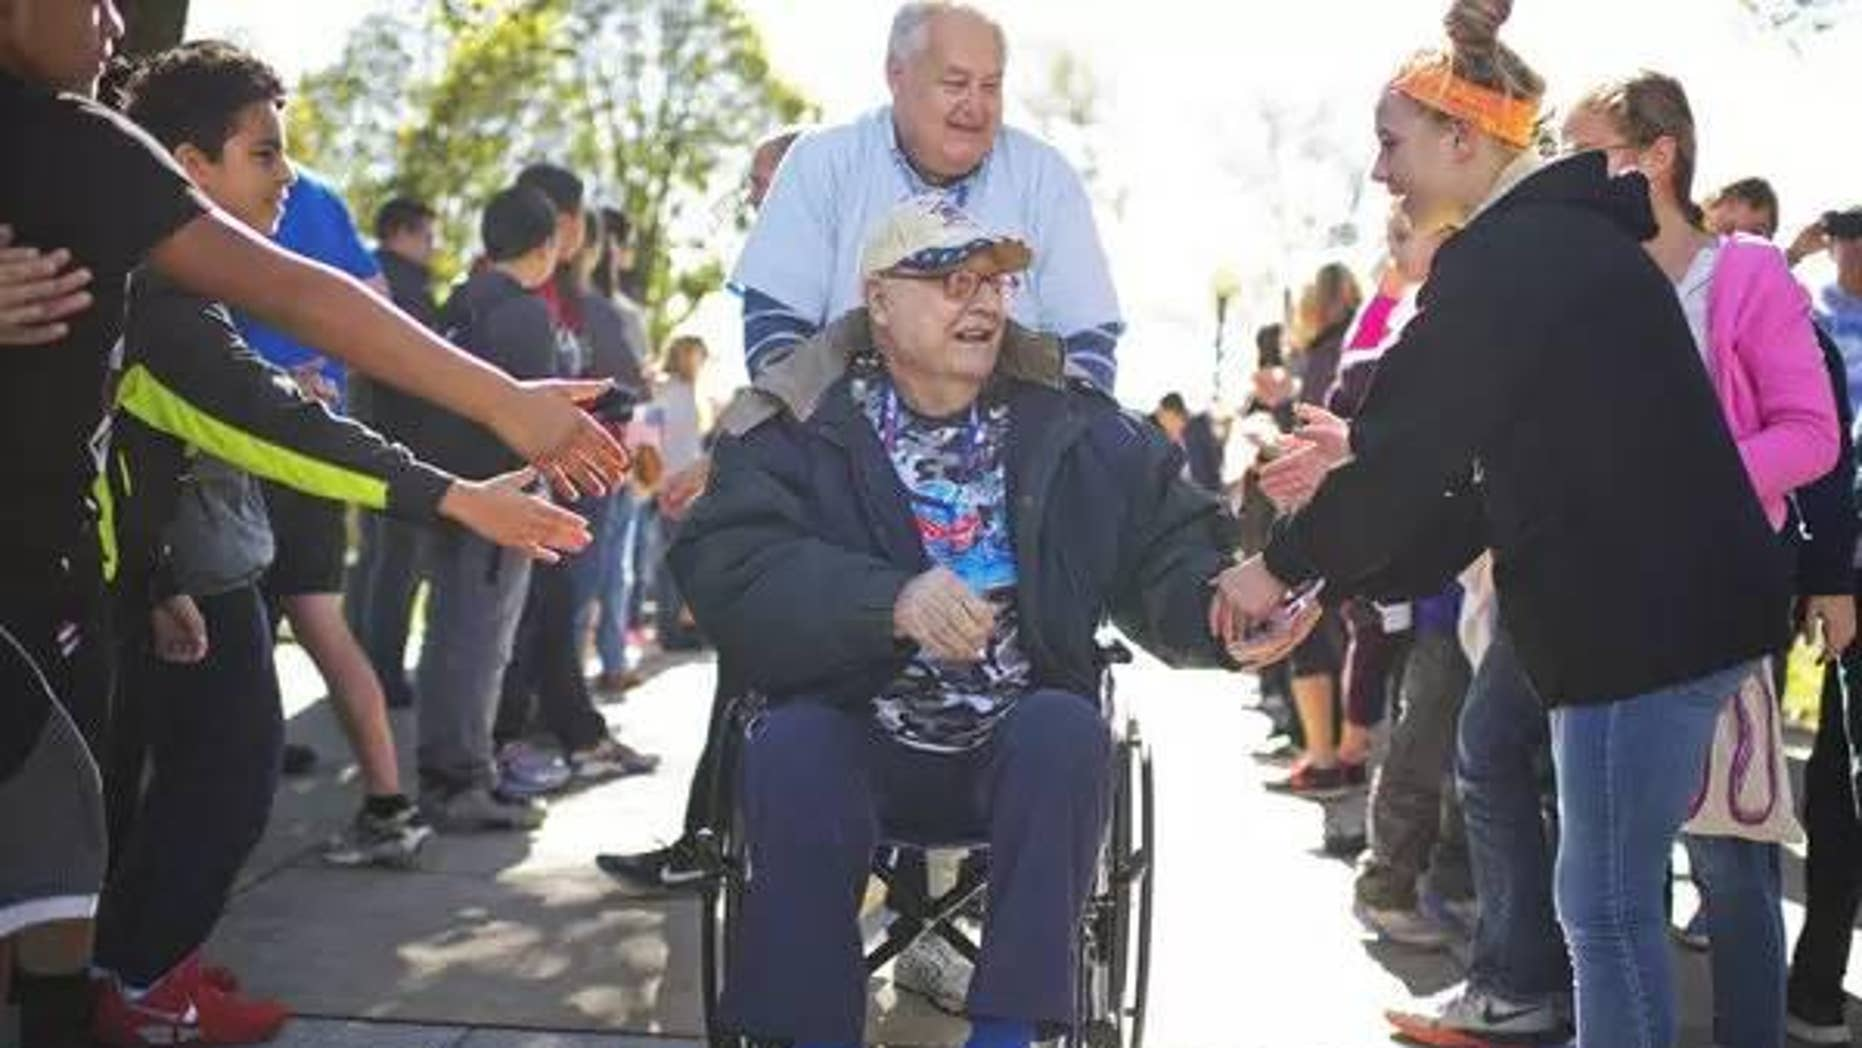 Anthony Petruzzi, 92, a veteran of World War II, Korea, and Vietnam is greeted as he arrives with an Honor Fight group from Kansas City, Mo., at the WWII Memorial on Veteran's Day, November 11.